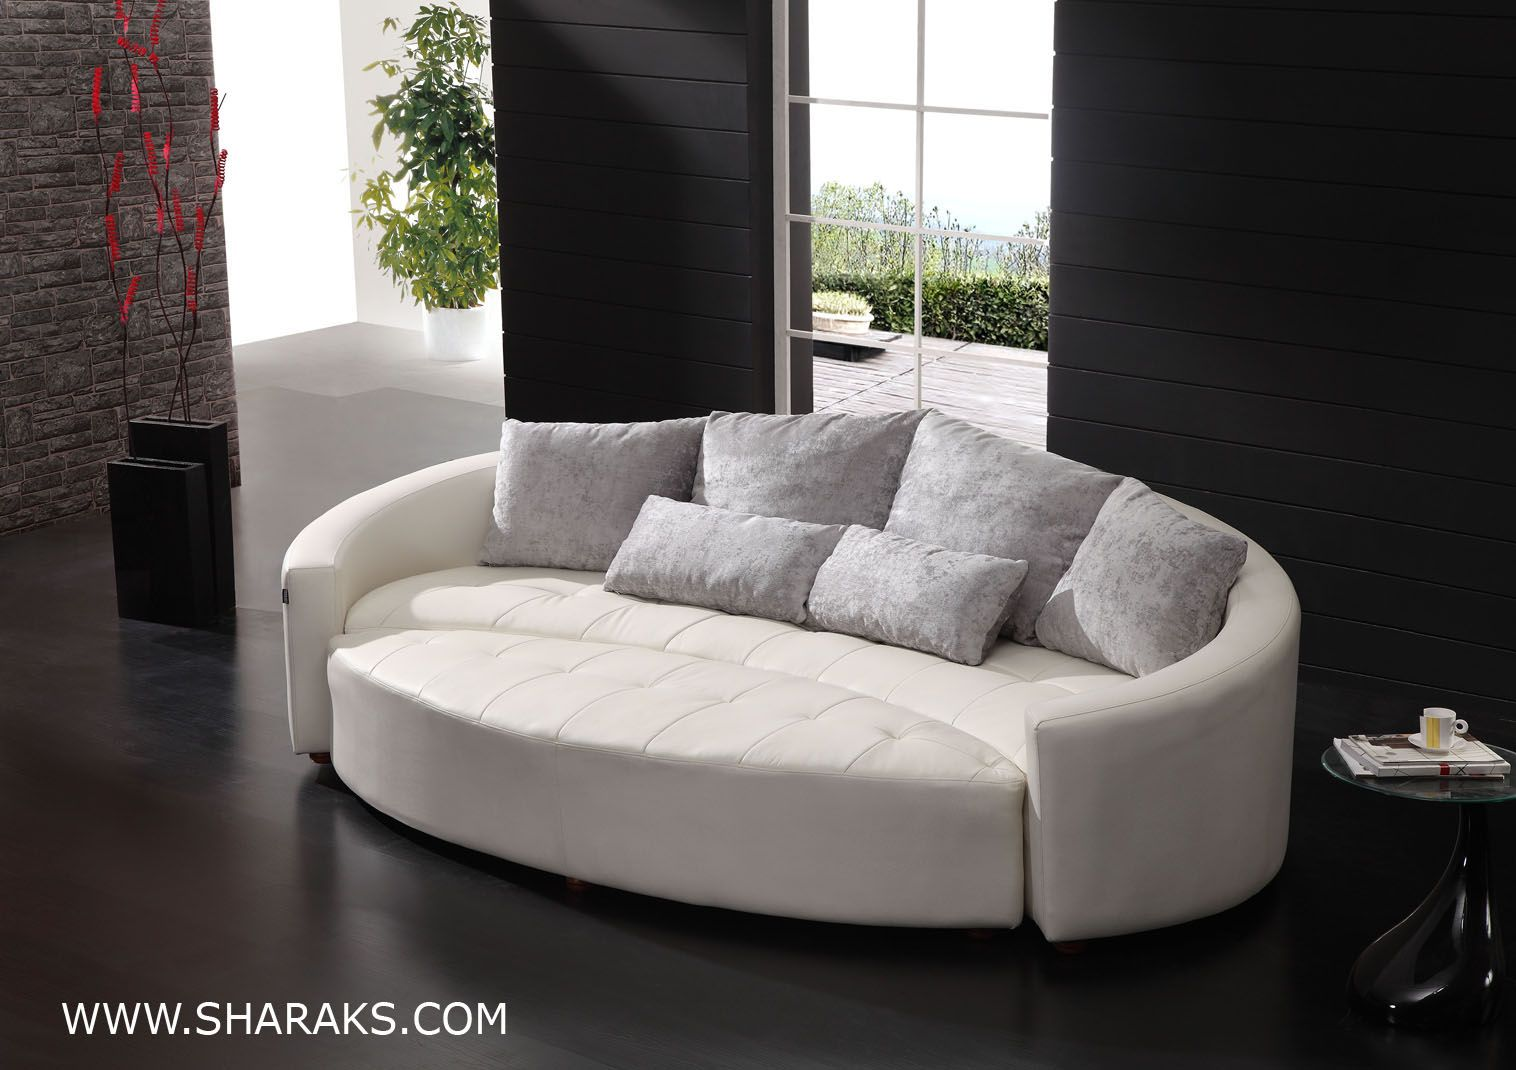 stylish  images about curved couch ideas on pinterest curved  - stylish  images about curved couch ideas on pinterest curved sofa for curvedsofa